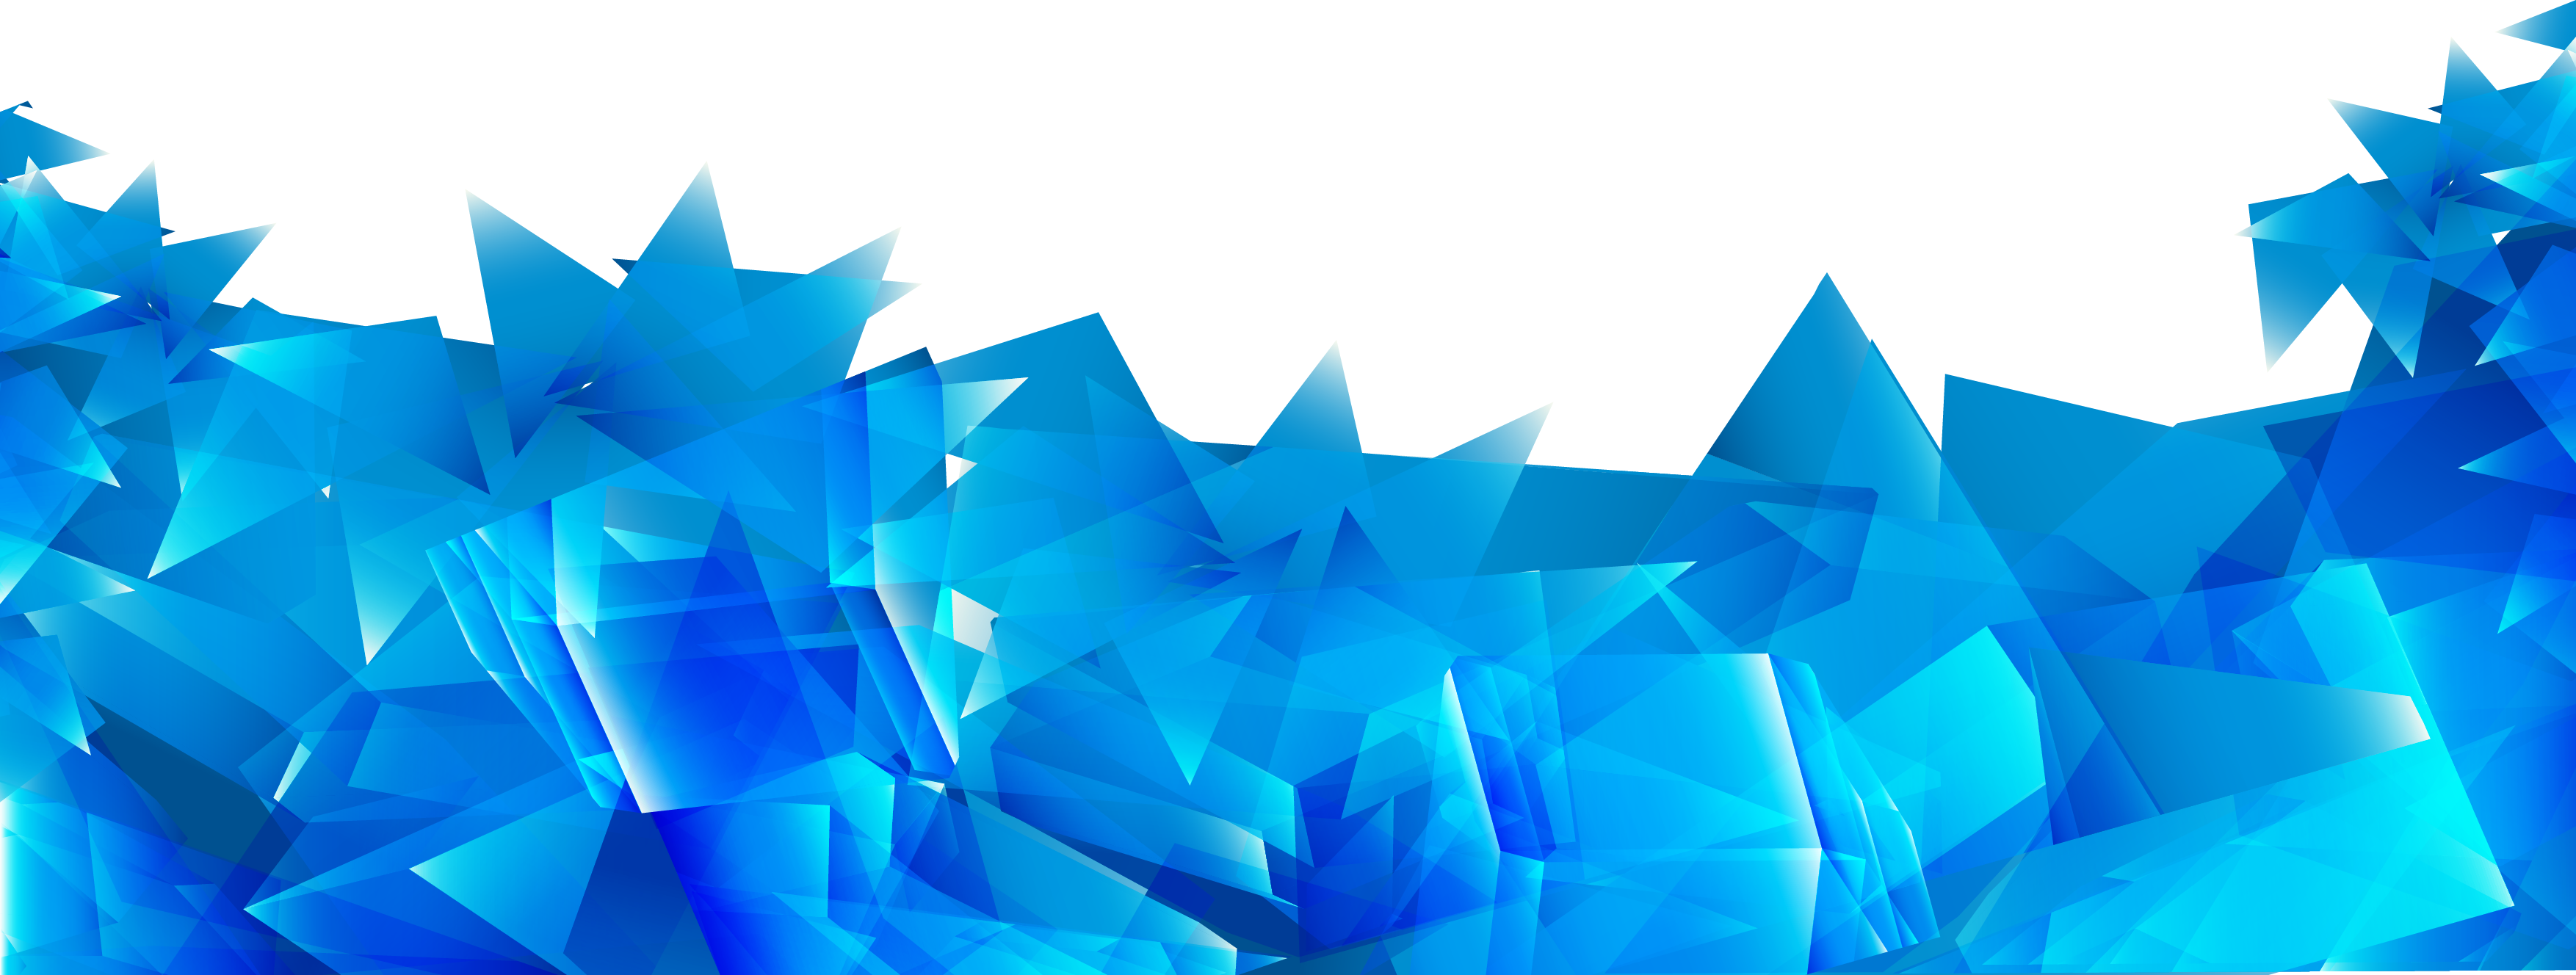 Blue Background Hd Png 20 Free Cliparts Download Images On